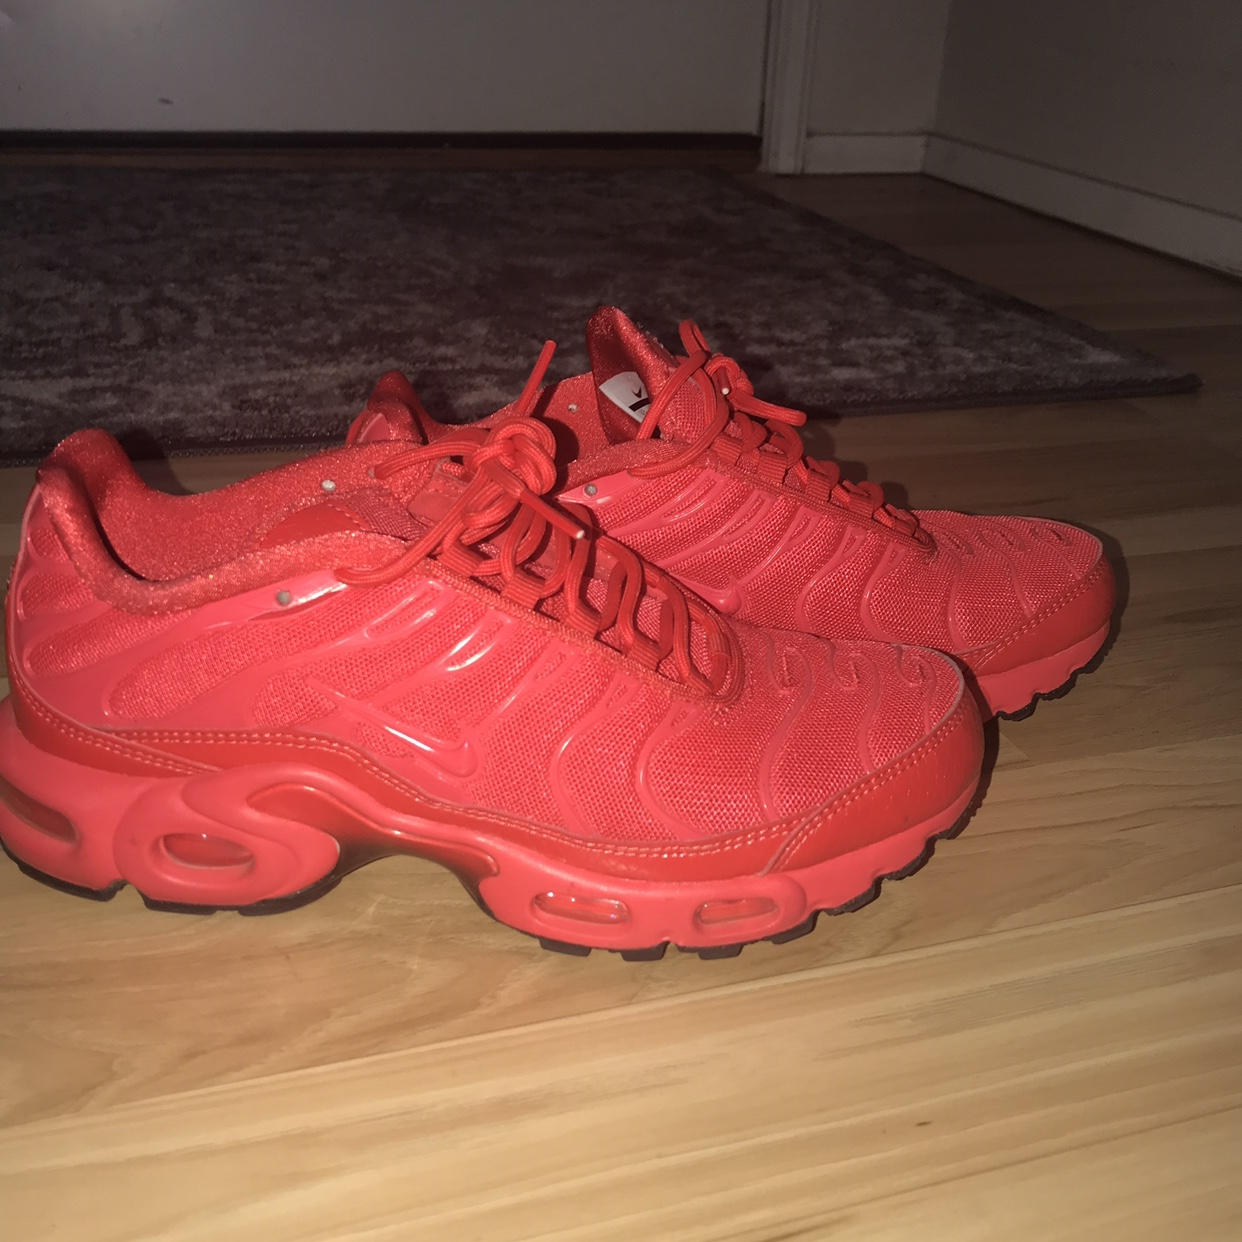 Nike air max plus tn In the color light